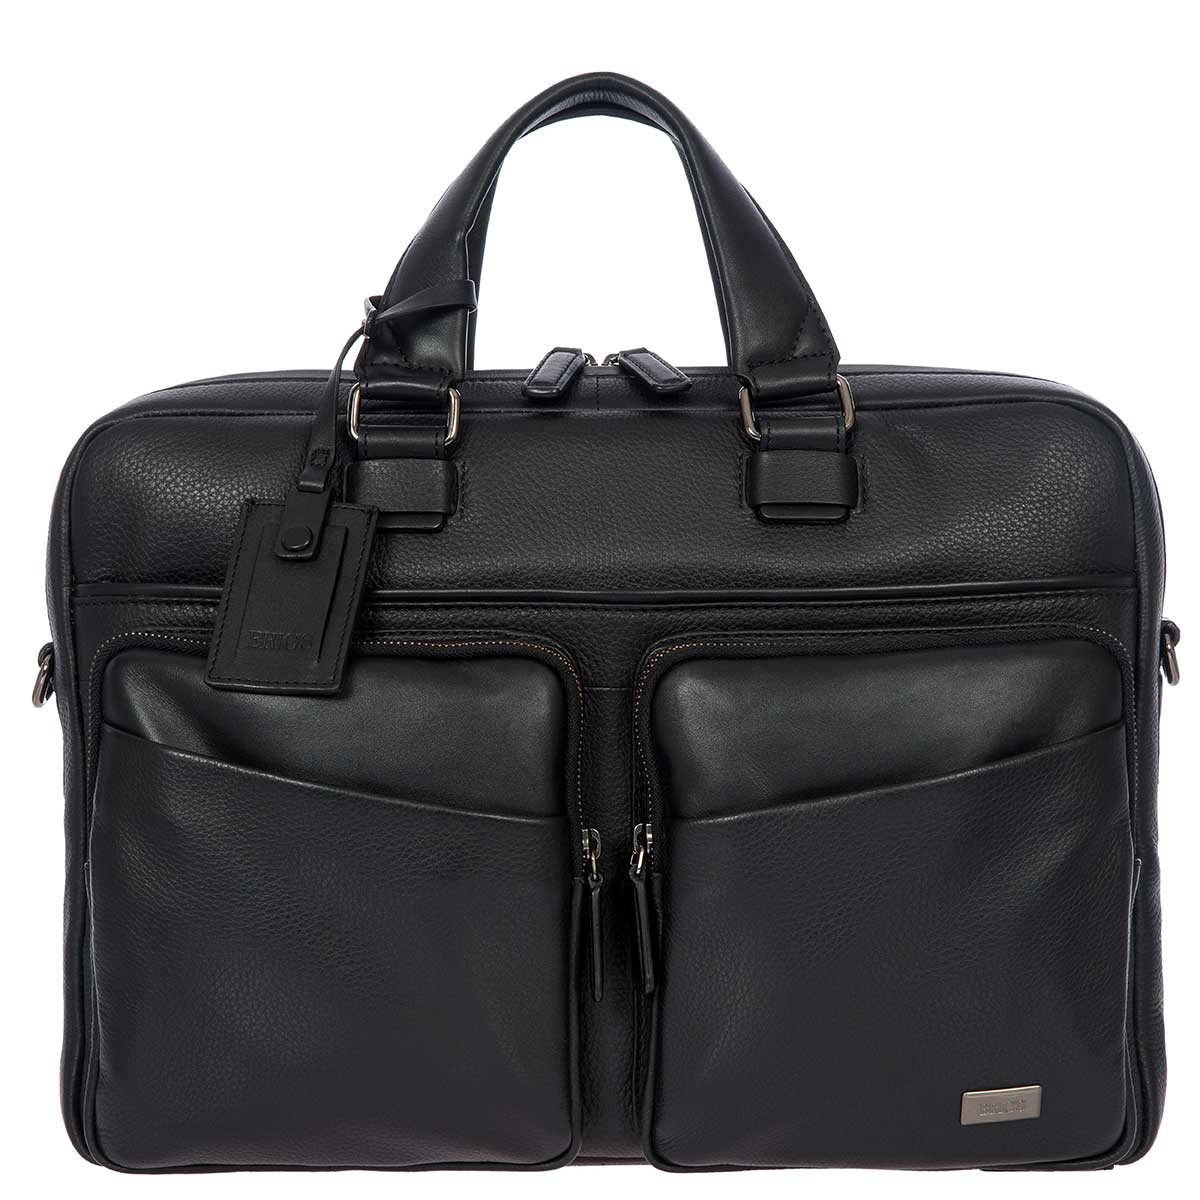 Torino Briefcase 1 Garment 2 Handle by Brics (Color: Black)